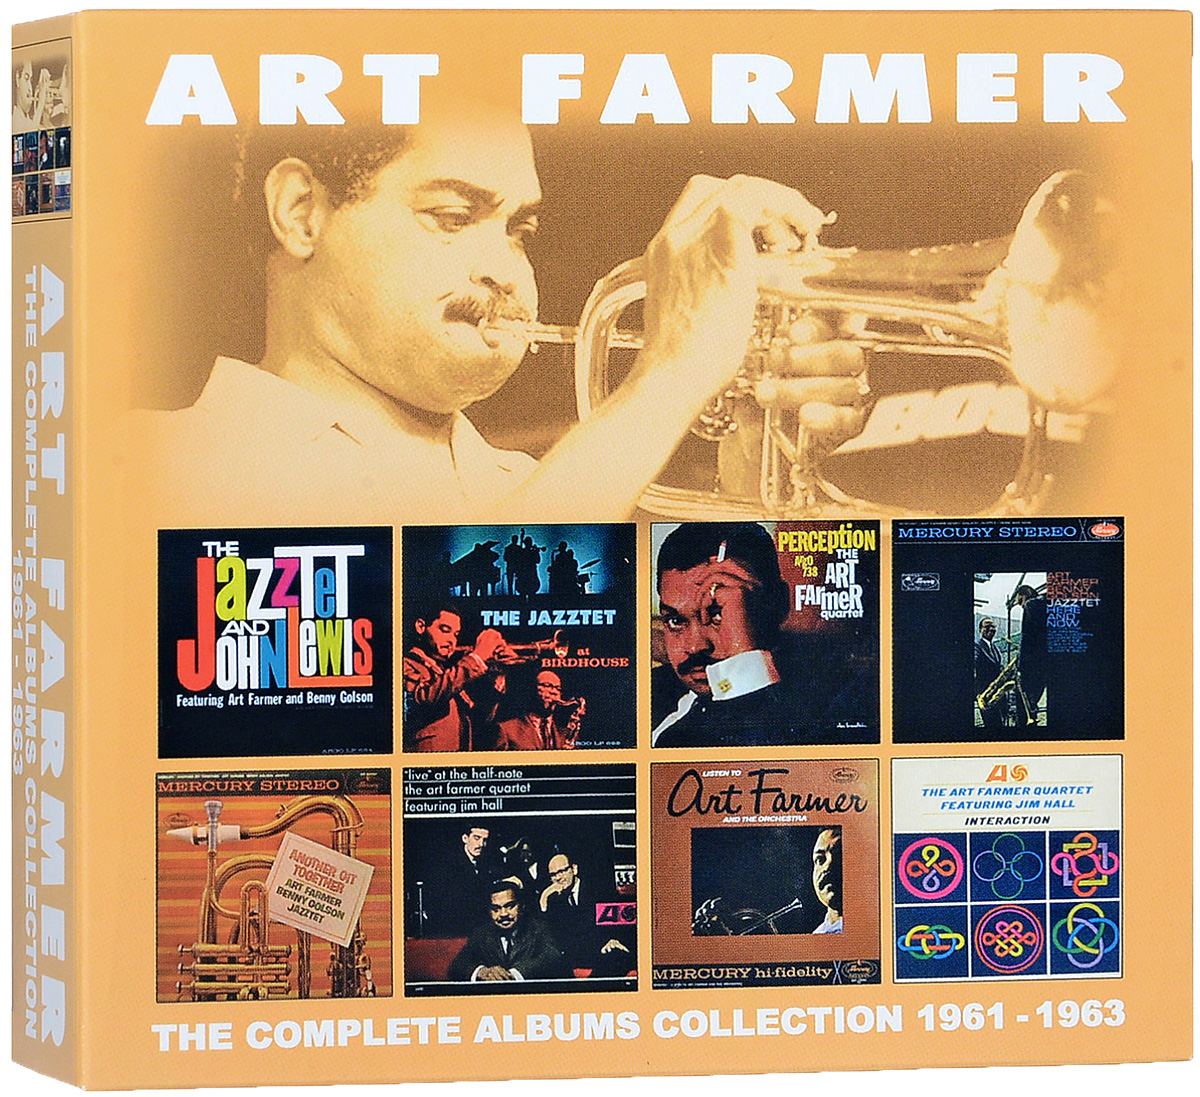 Арт Фармер Art Farmer. The Complete Albums Collection 1961 - 1963 (4 CD)